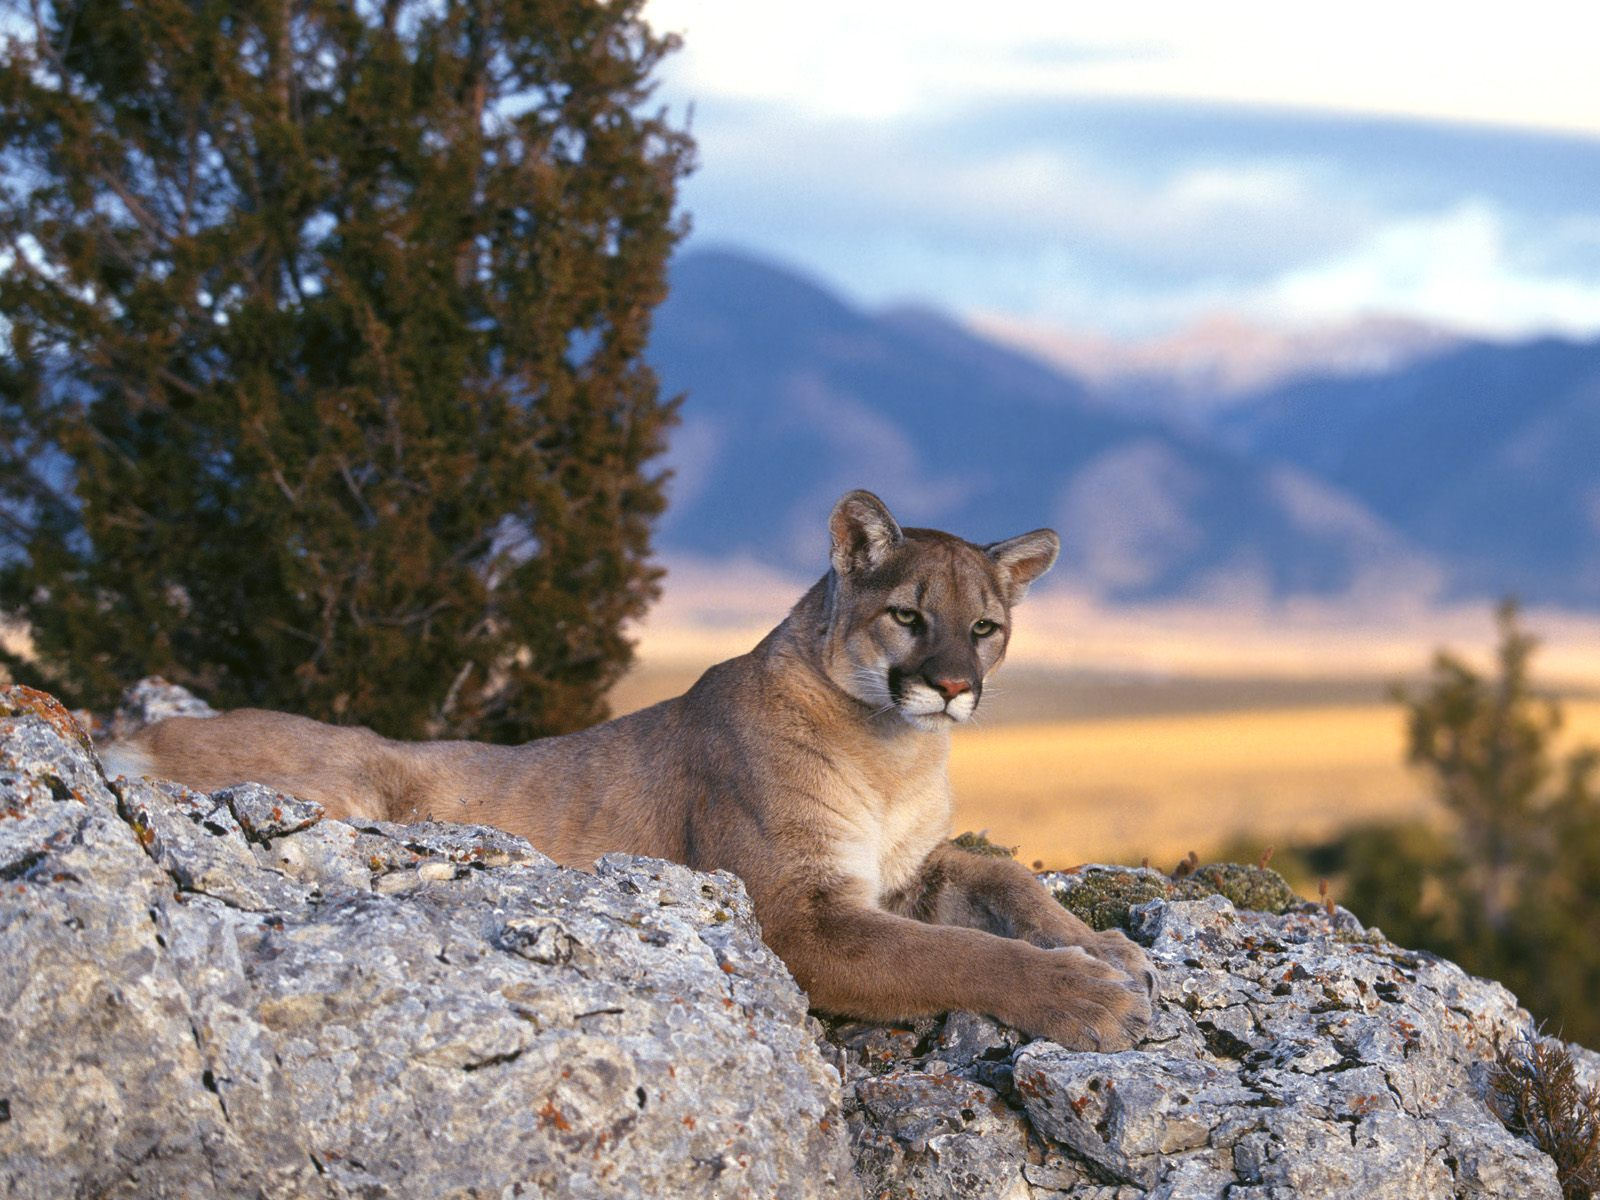 Mountain animals pictures - photo#27